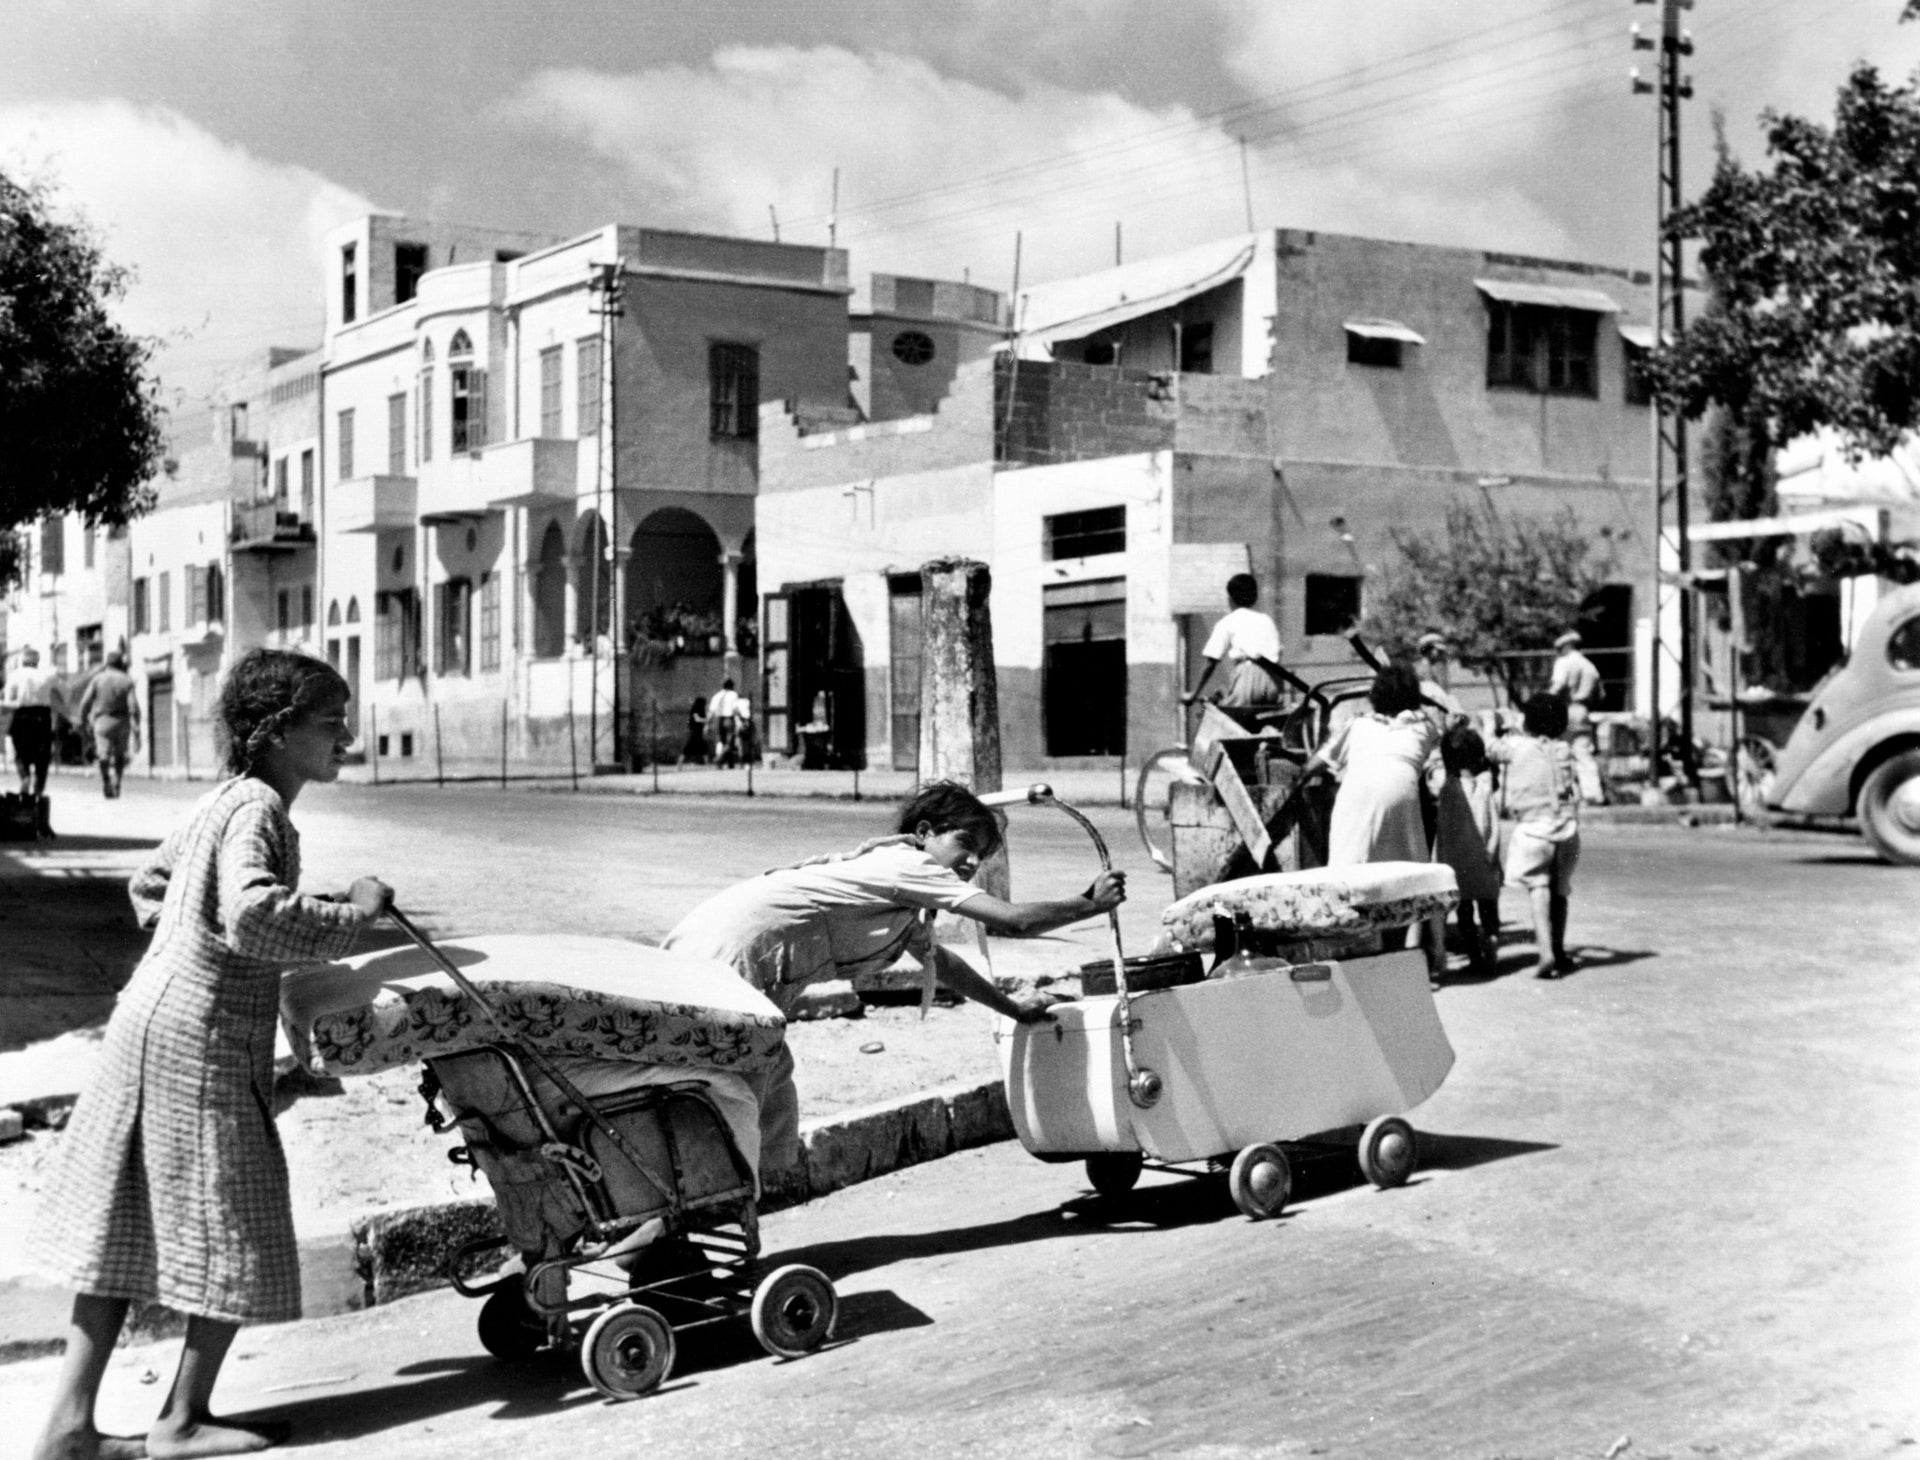 Palestinian refugee girls push their belongings in prams and carts as they flee Jaffa in the wake of the Arab-Israeli war in 1948.